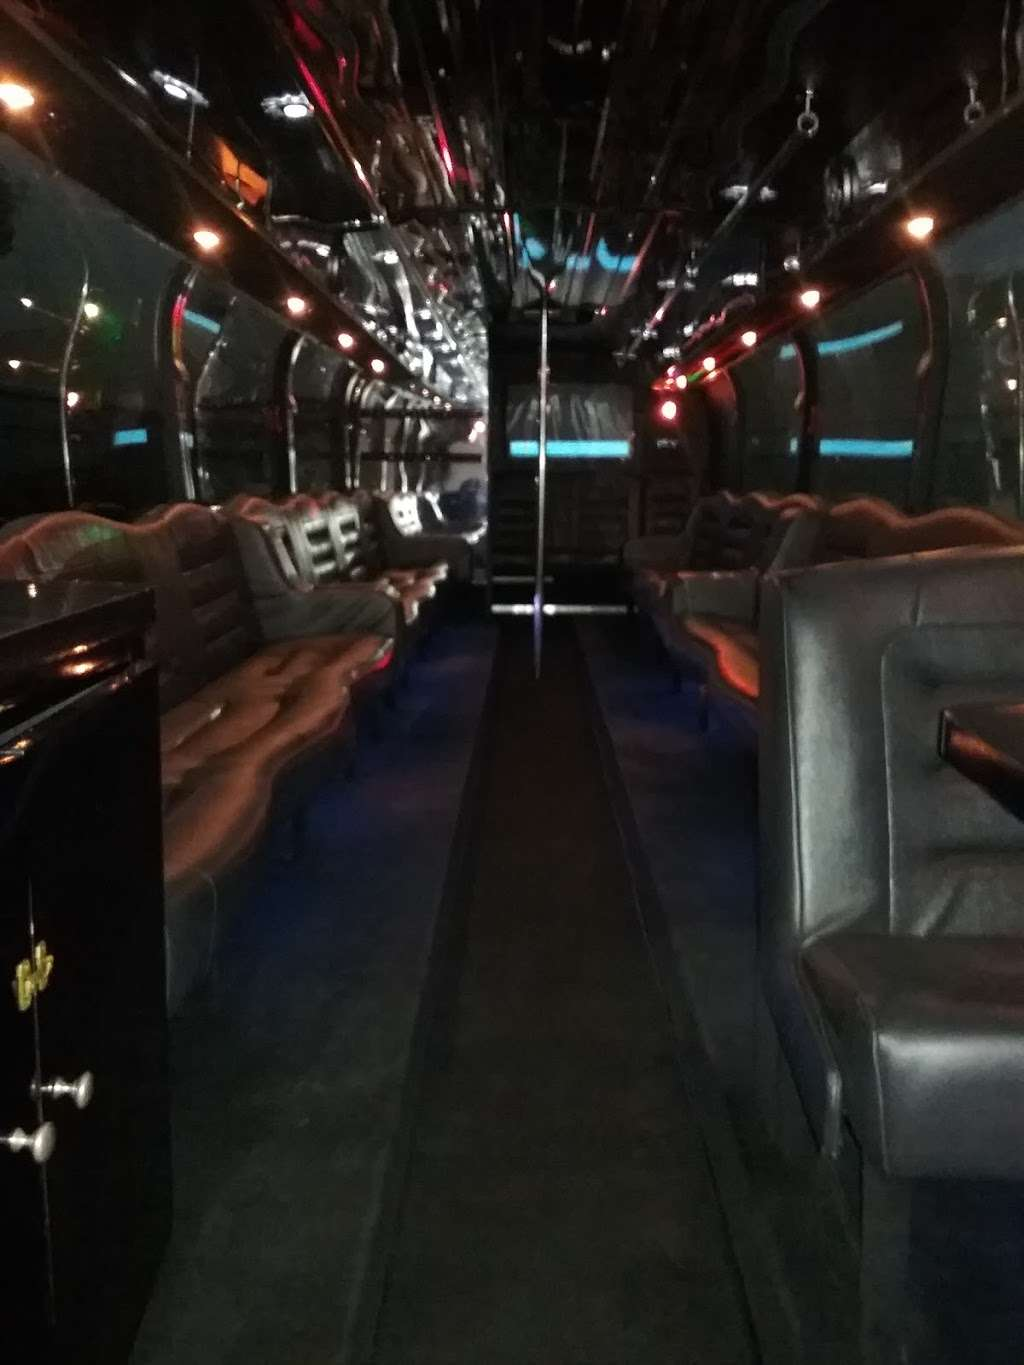 Epic Limo and Party Bus - travel agency  | Photo 6 of 10 | Address: 3392 E St, San Diego, CA 92102, USA | Phone: (858) 270-5466